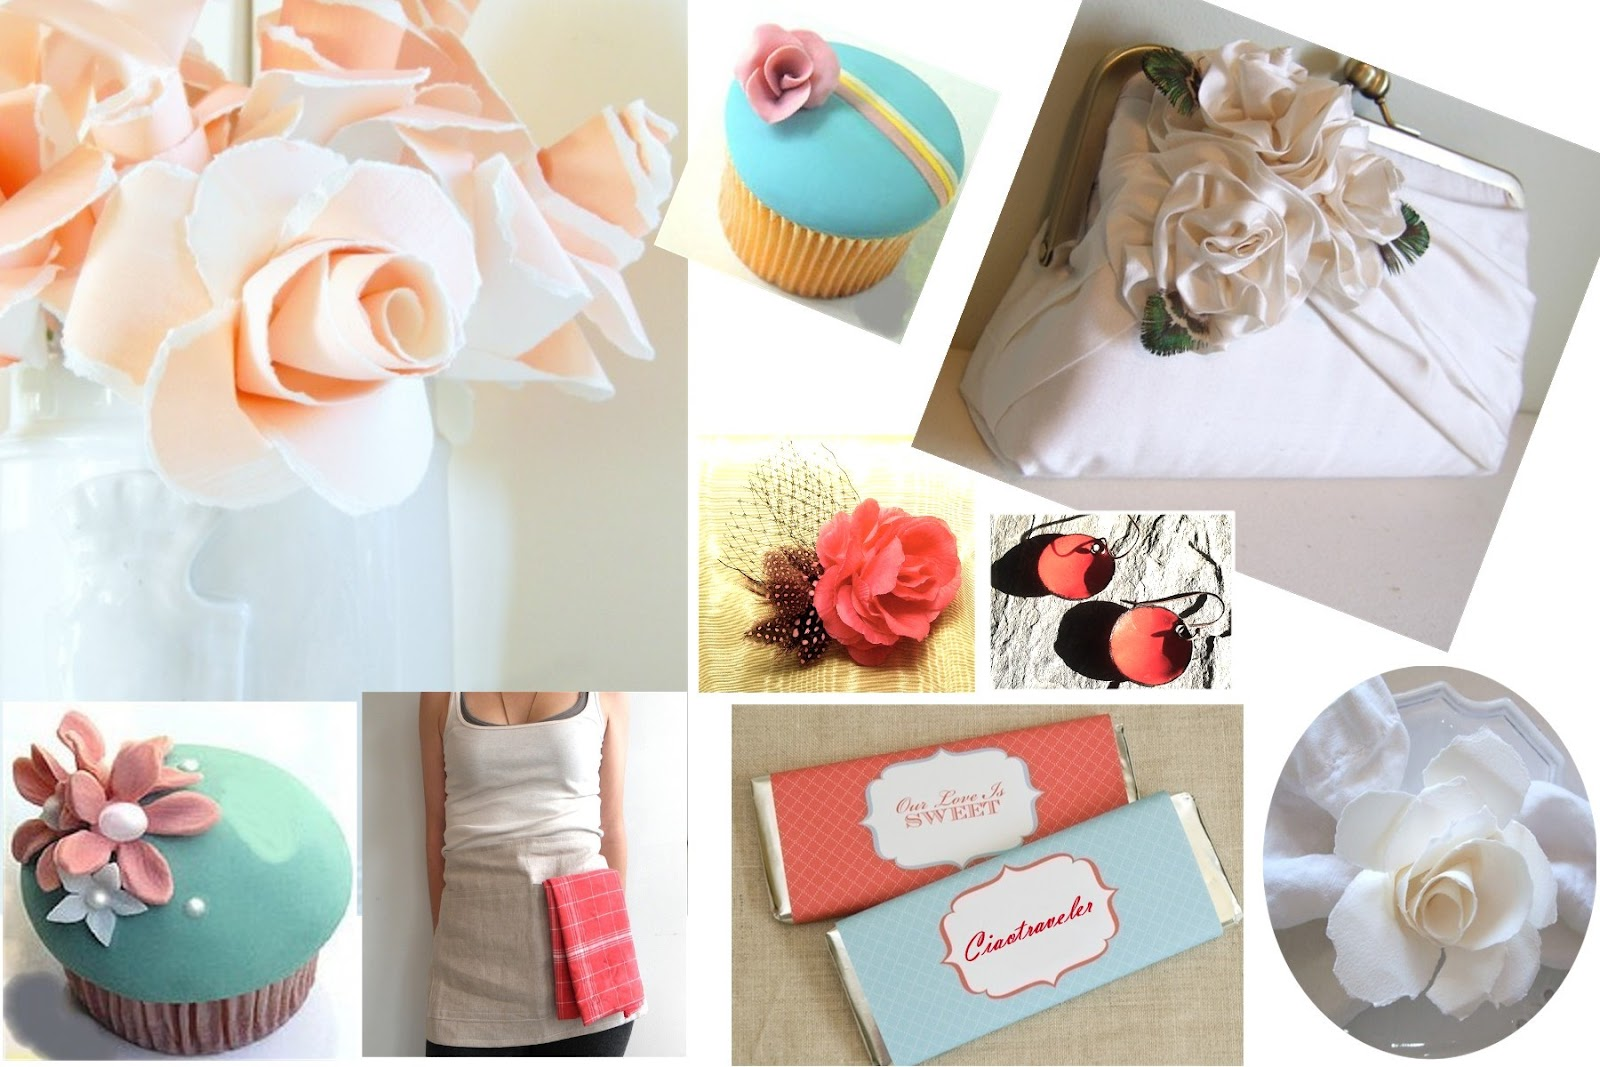 Etsy Finds: Wedding and Style